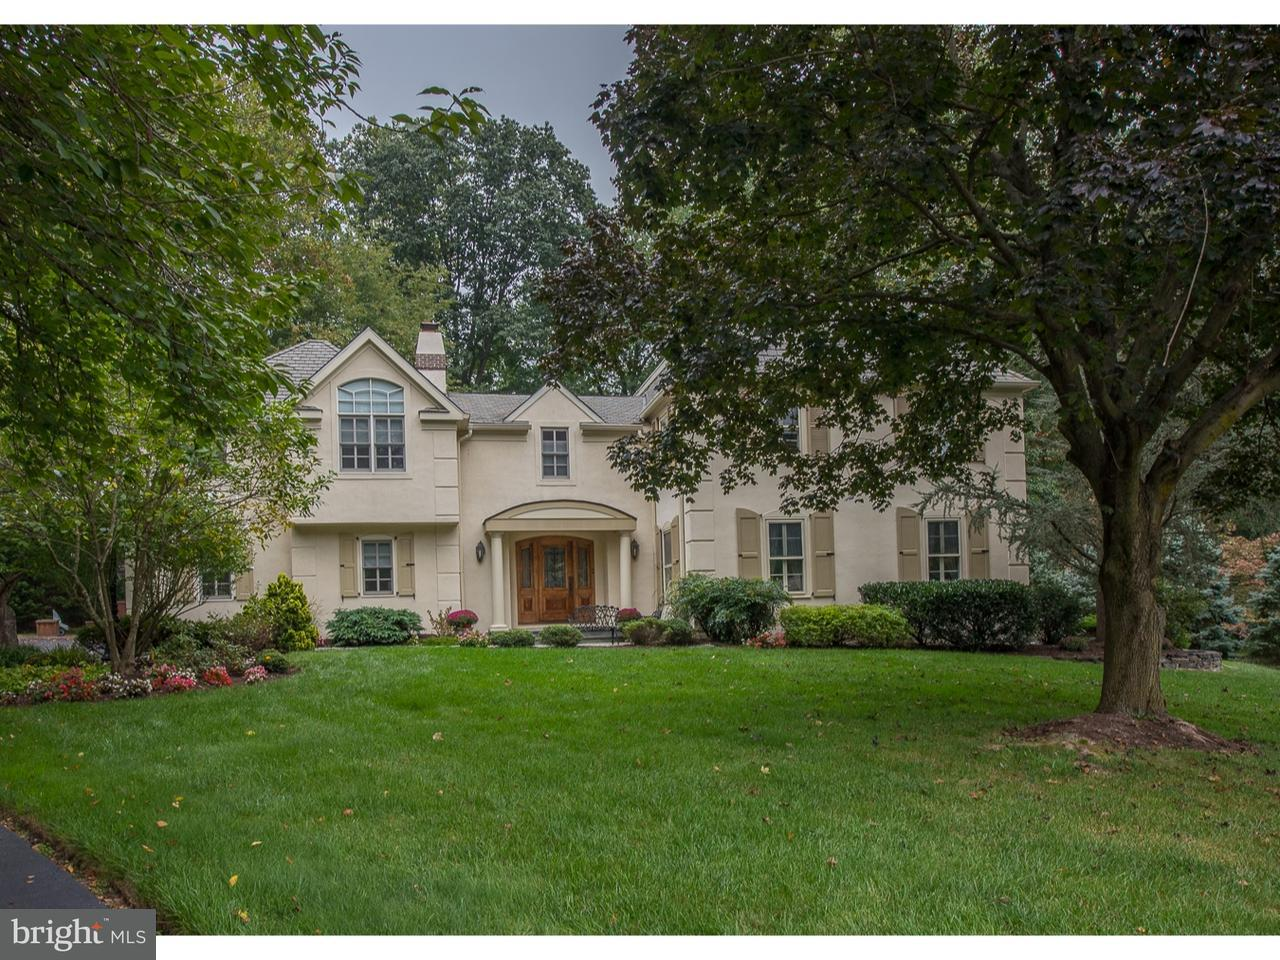 Single Family Home for Sale at 211 HERMITAGE Lane Radnor, Pennsylvania 19087 United States